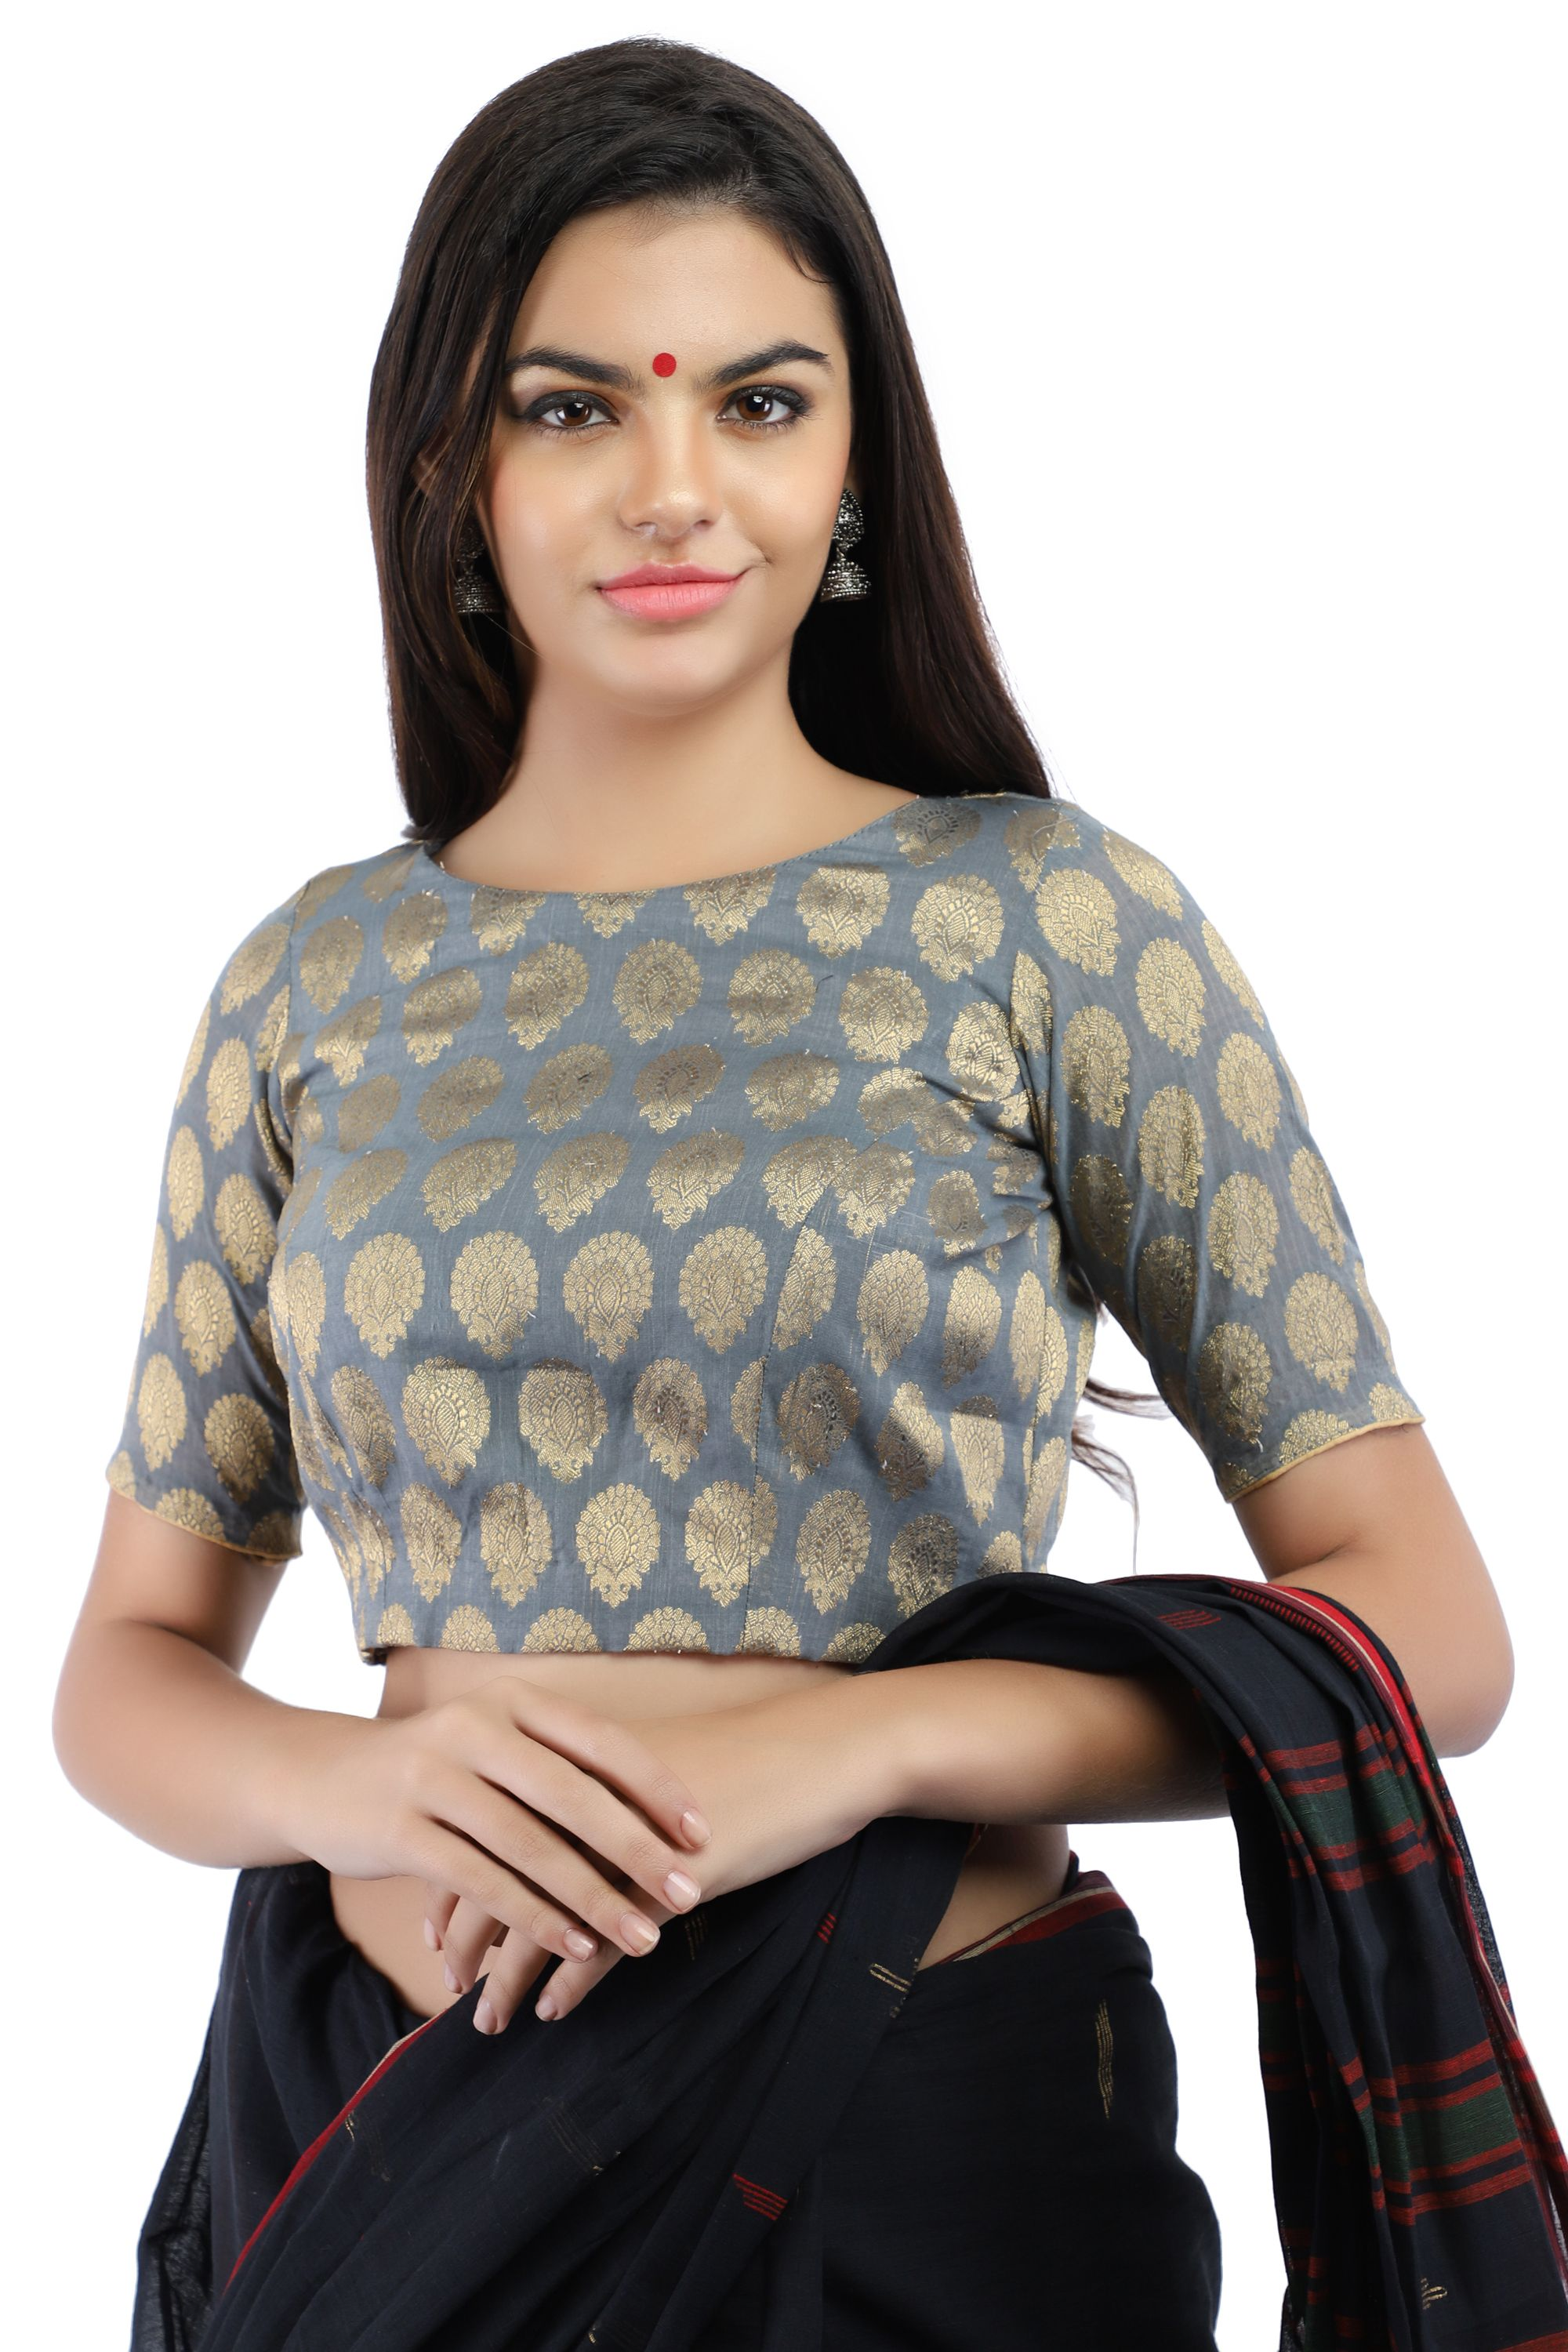 Banarasi Chanderi Silk Jacquard Boat Neck Blouse In Grey With Hook Closure on Back